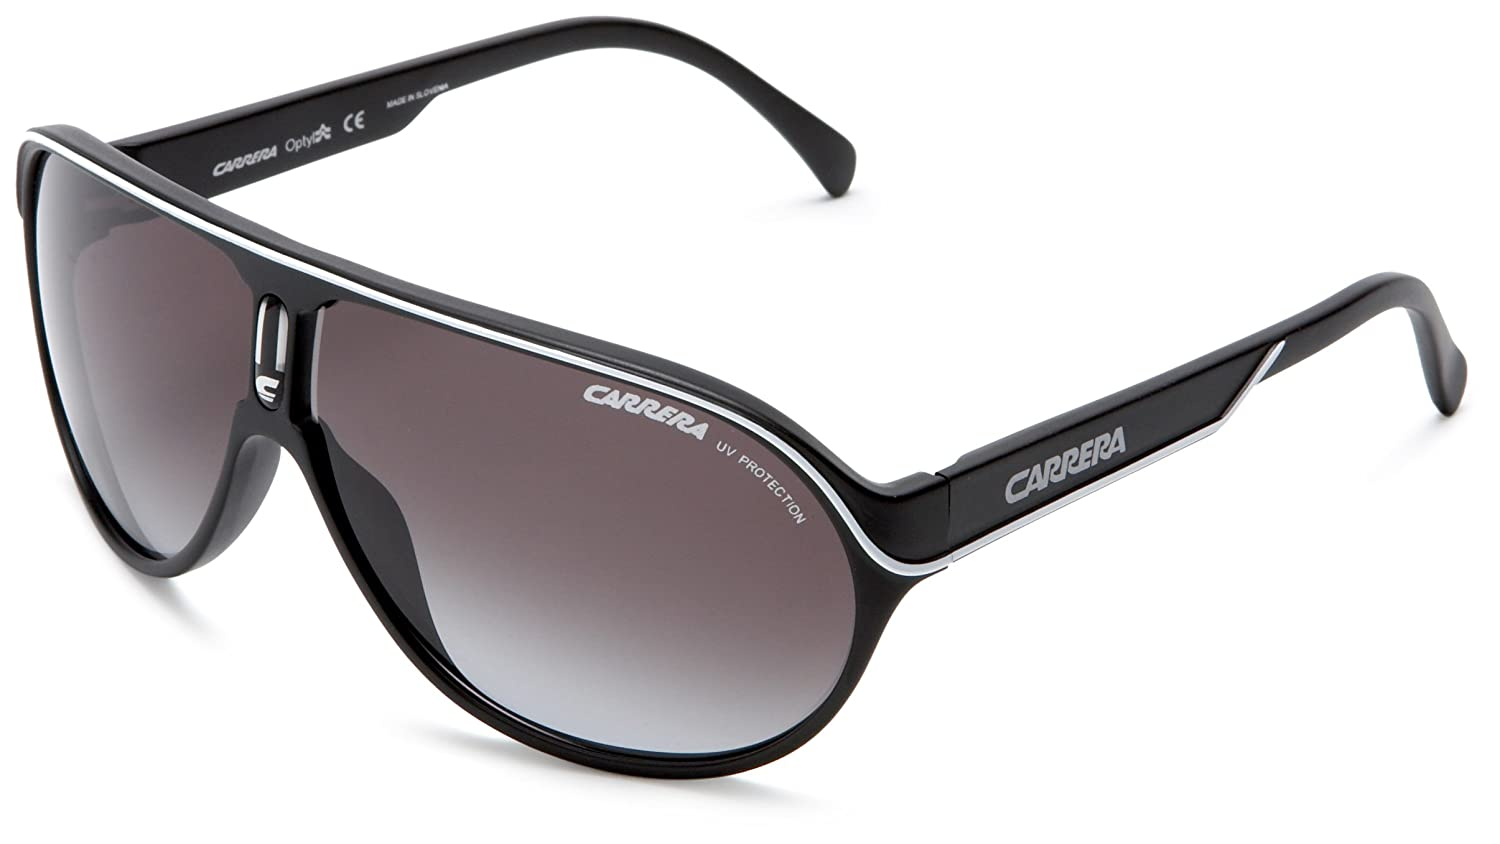 Carrera - Gafas de sol Jocker 241616 7nn 65 Mm: Amazon.es ...